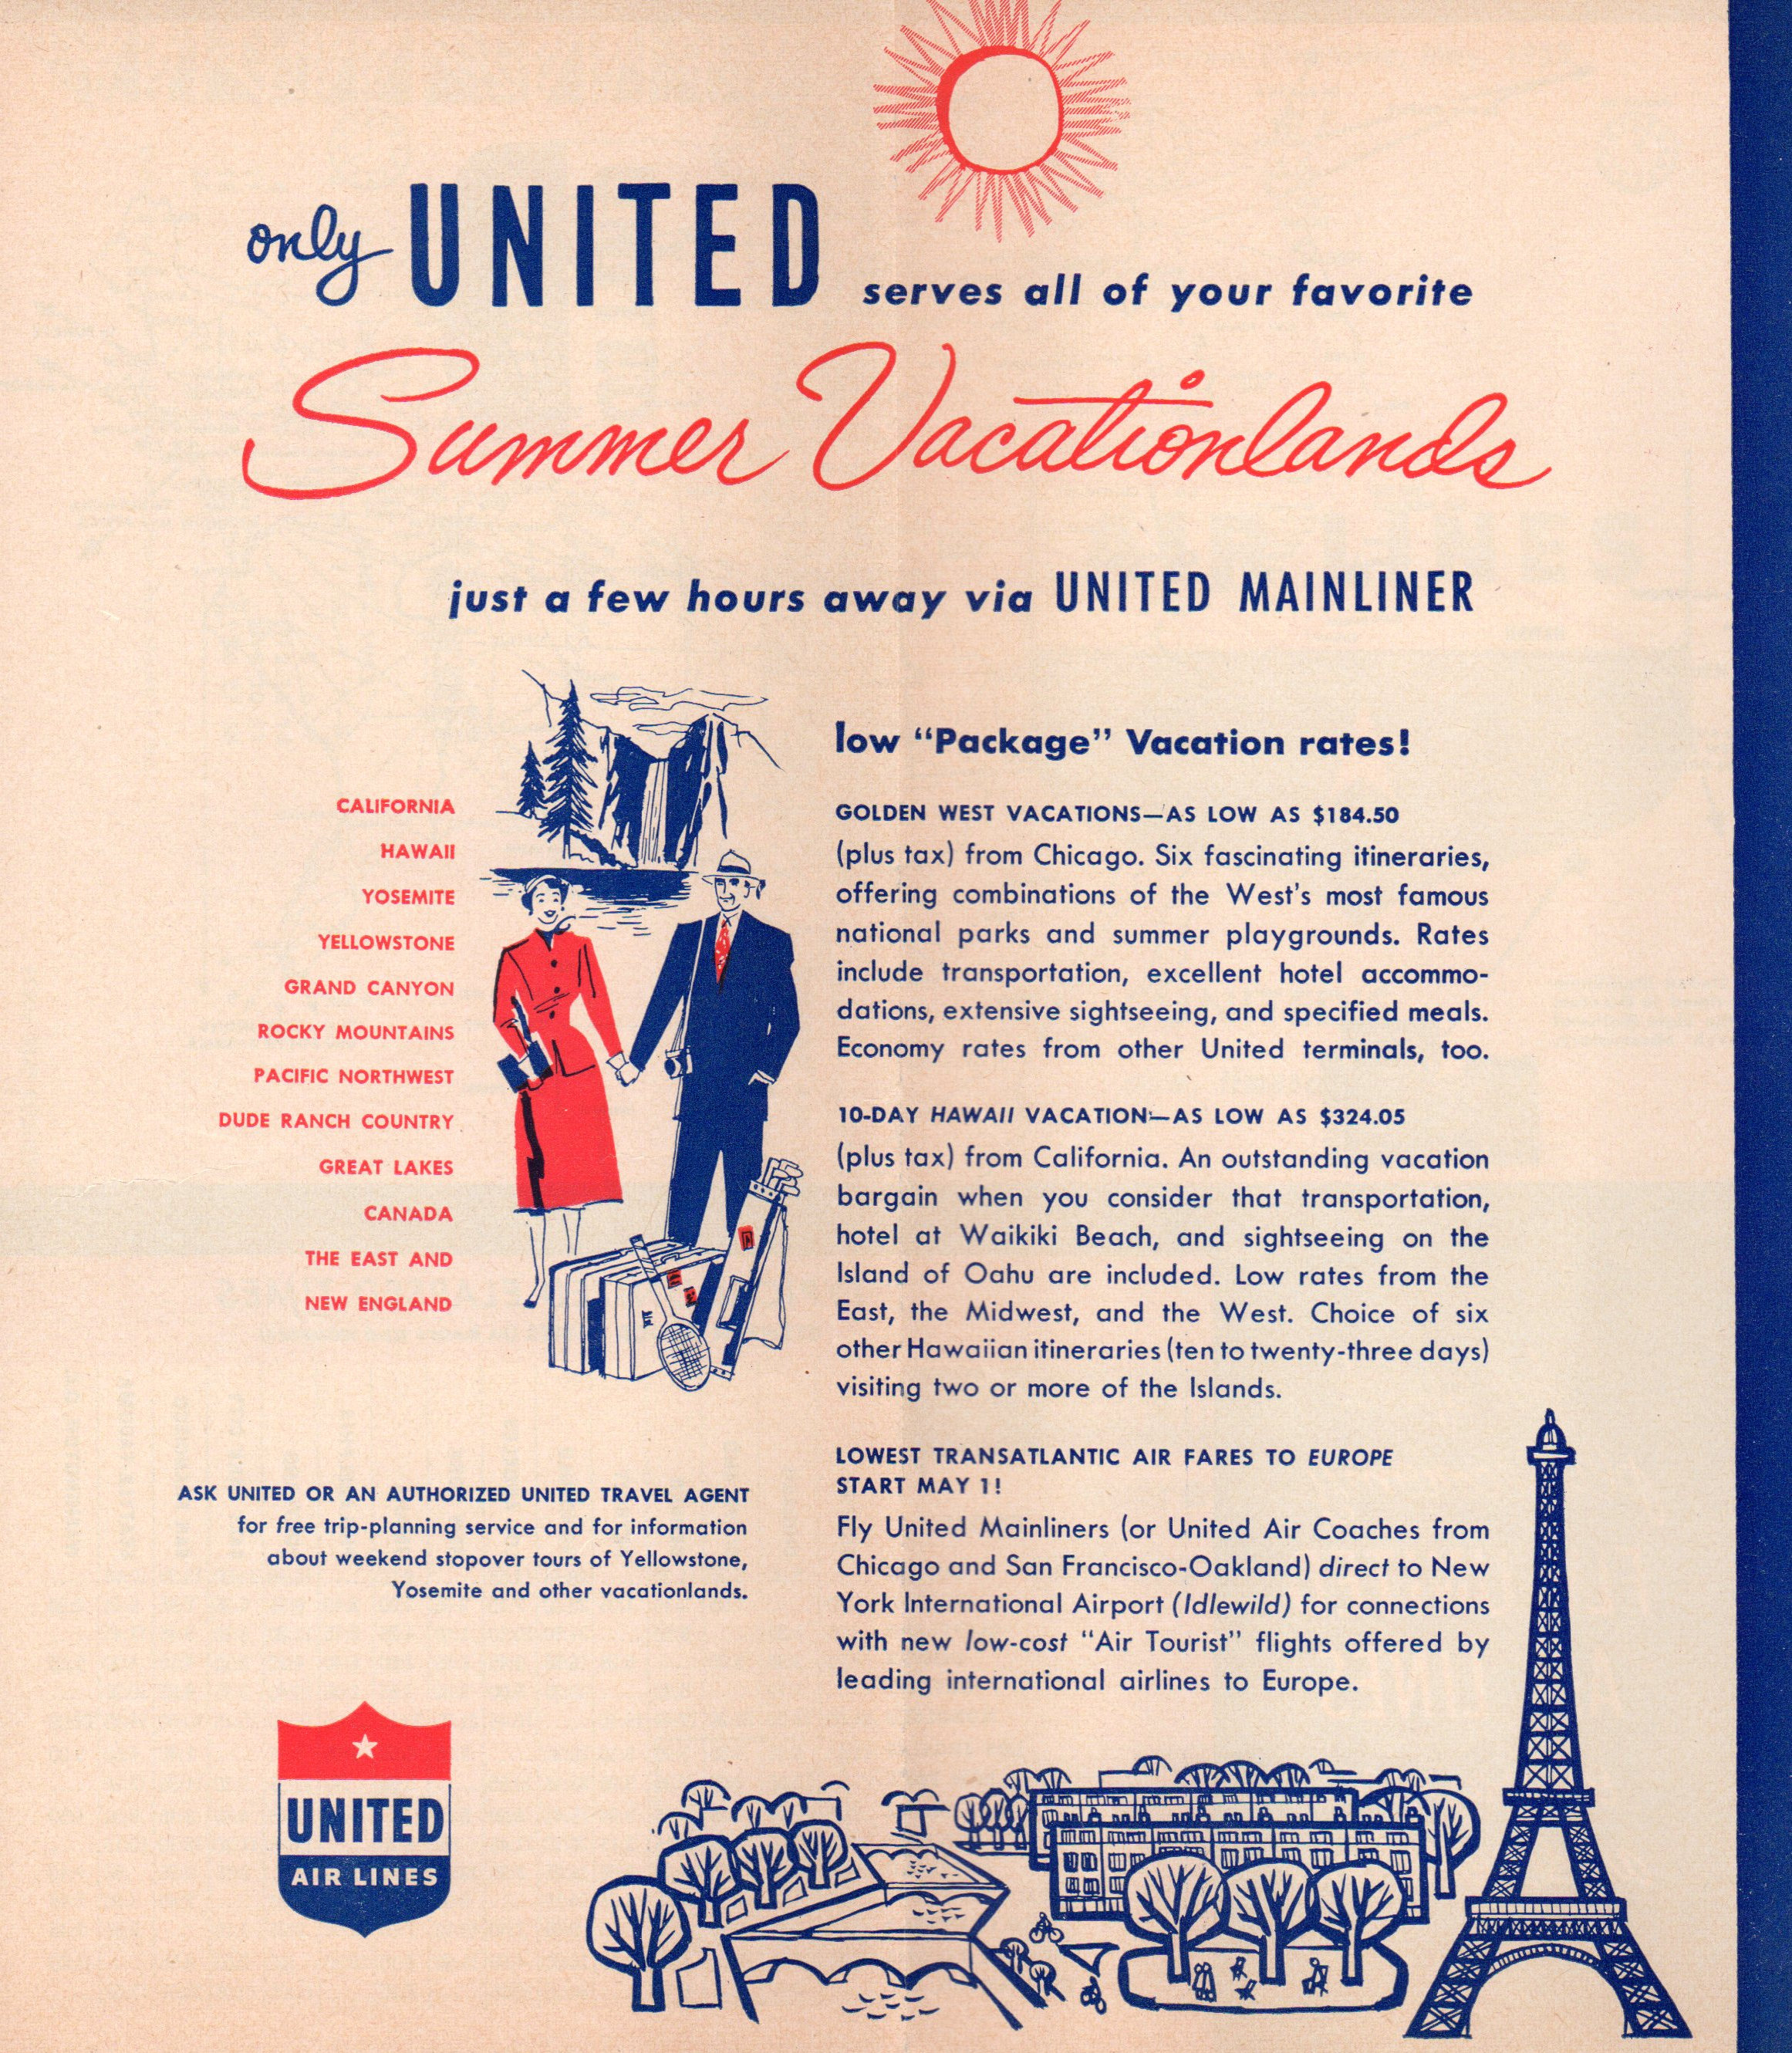 Timetables from the Past - World Airline Historical Society